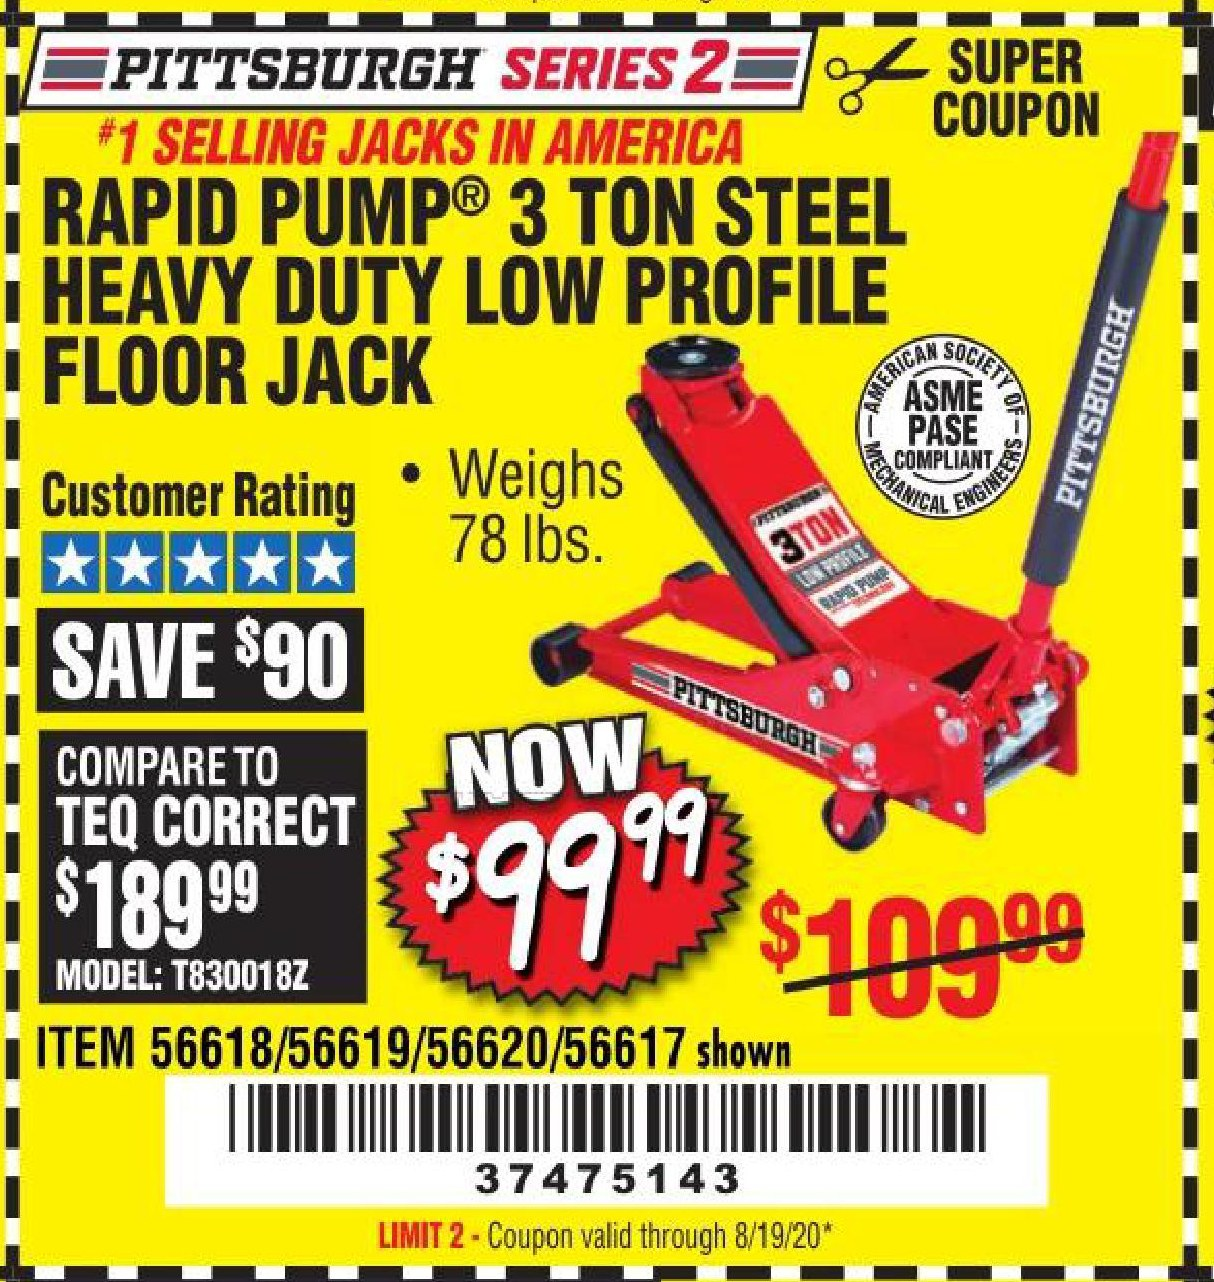 Harbor Freight HEAVY DUTY 3 TON LOW PROFILE STEEL FLOOR JACK coupon